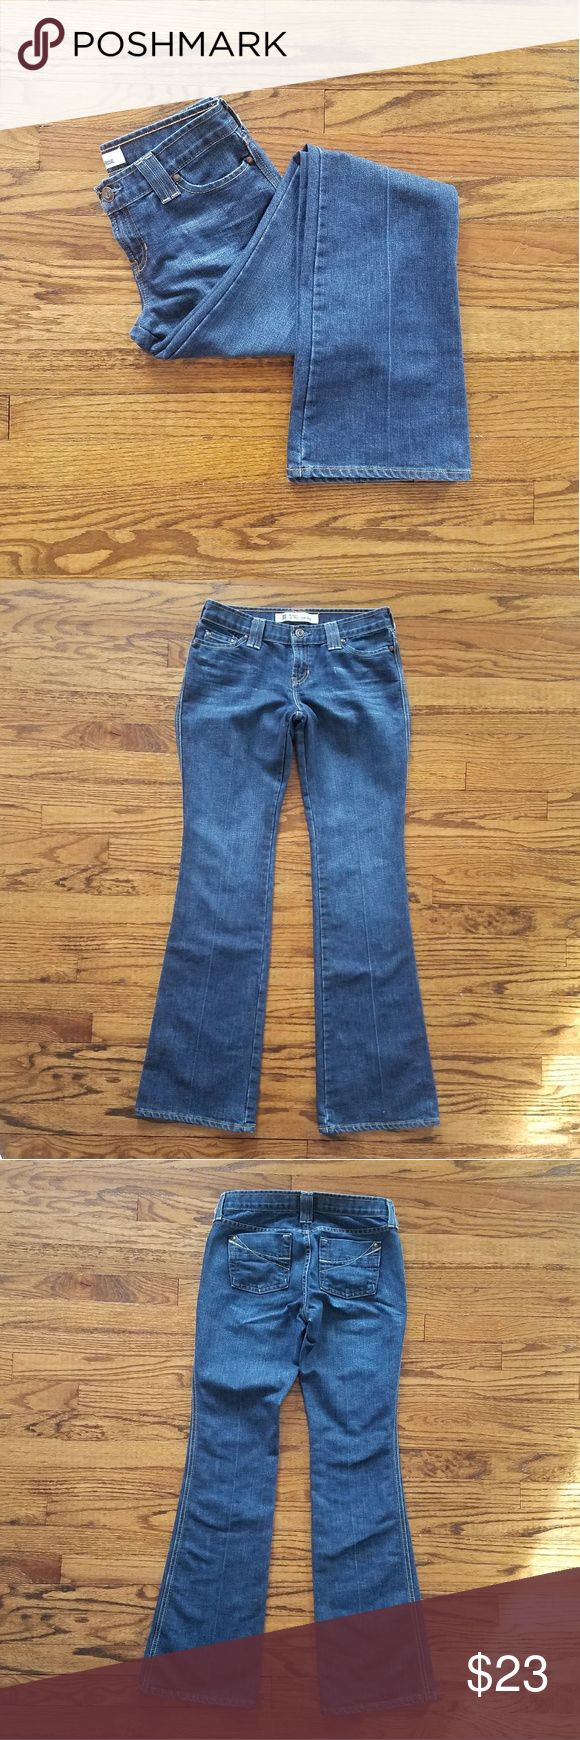 "GAP original ultra low rise jeans size 4 Original ultra low rise jeans. Creases down front and back. Measurements are approx 31"" waist, 33"" inseam, 8"" rise. Excellent used condition. GAP Jeans Boot Cut"